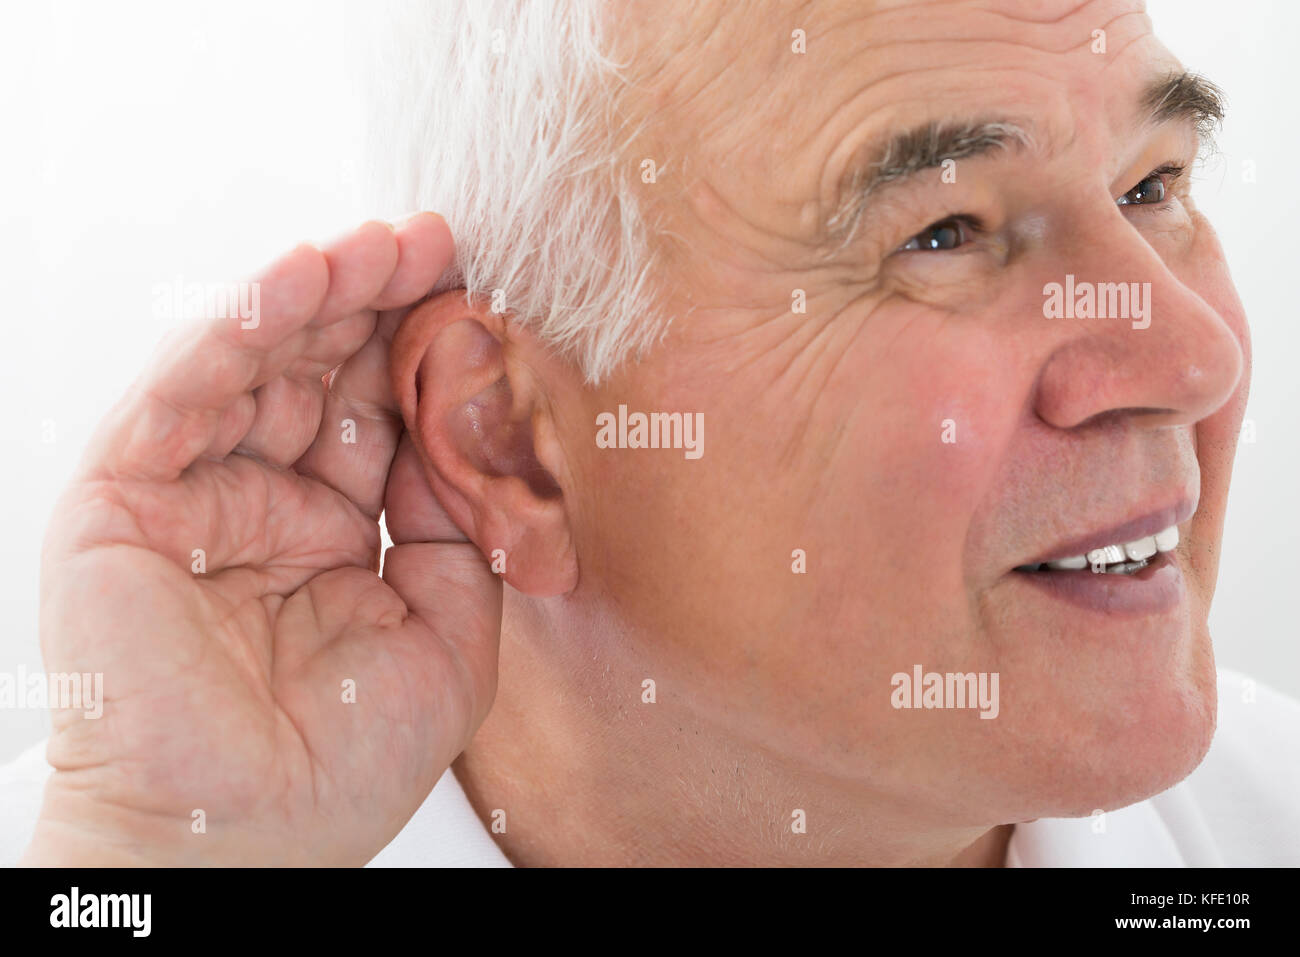 Senior Man Trying To Hear With Hand Over Ear - Stock Image